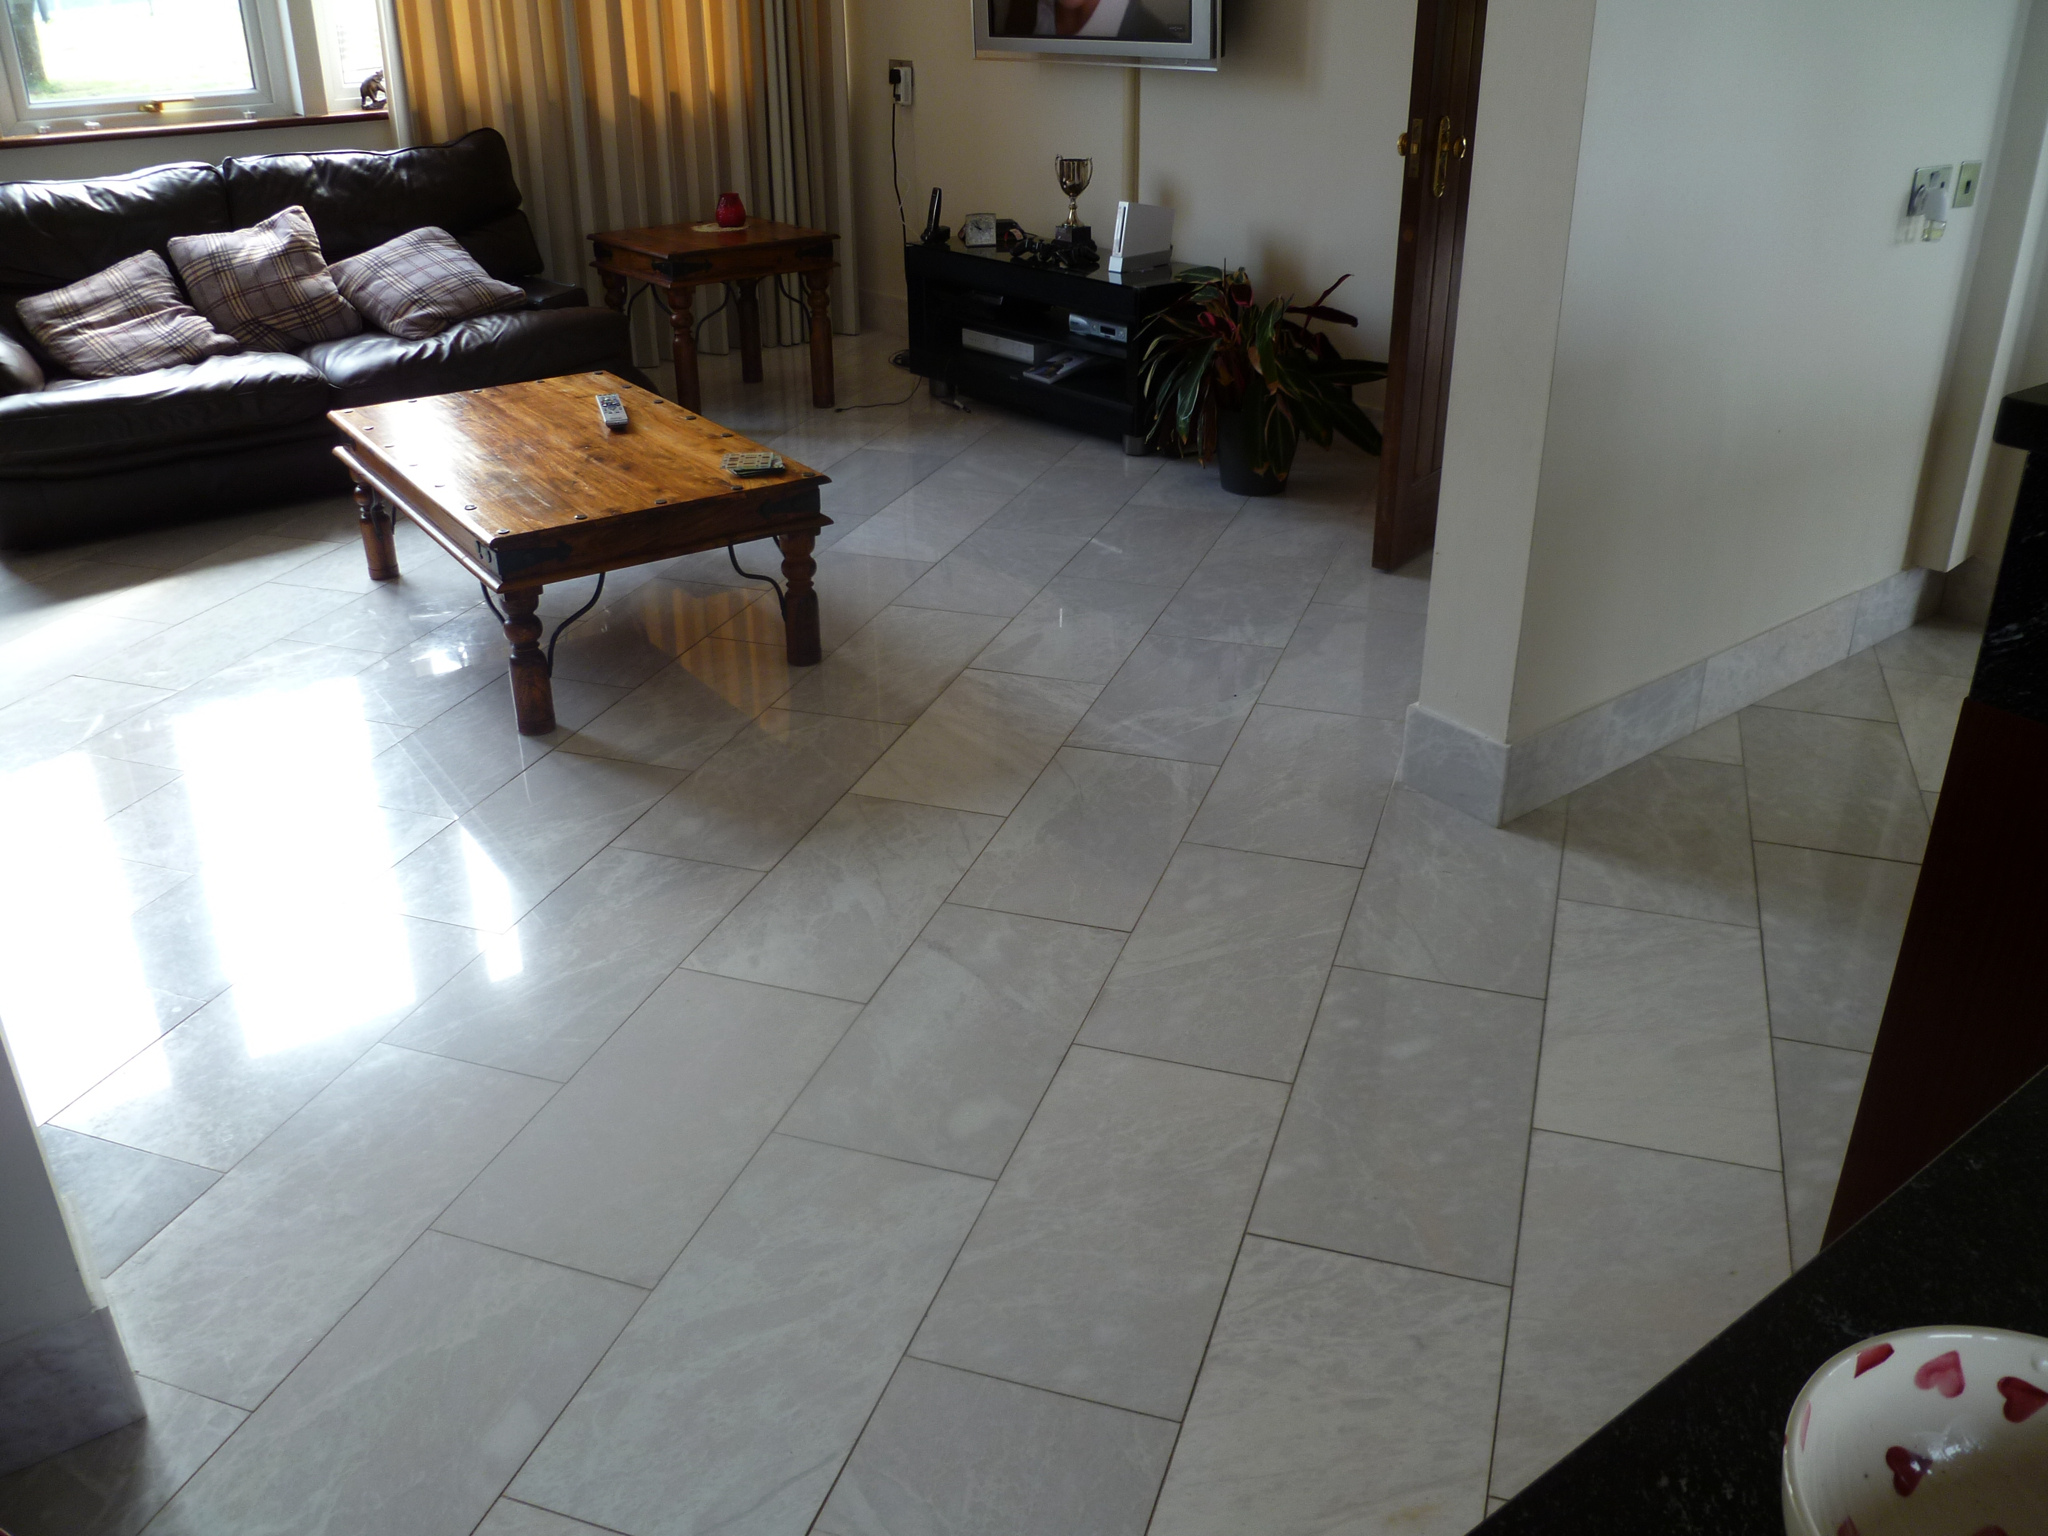 Hard wearing floor tiles choice image tile flooring design ideas hardwearing durable and quality floor tiles from our bristol shop 219 gloucester doublecrazyfo choice image doublecrazyfo Images